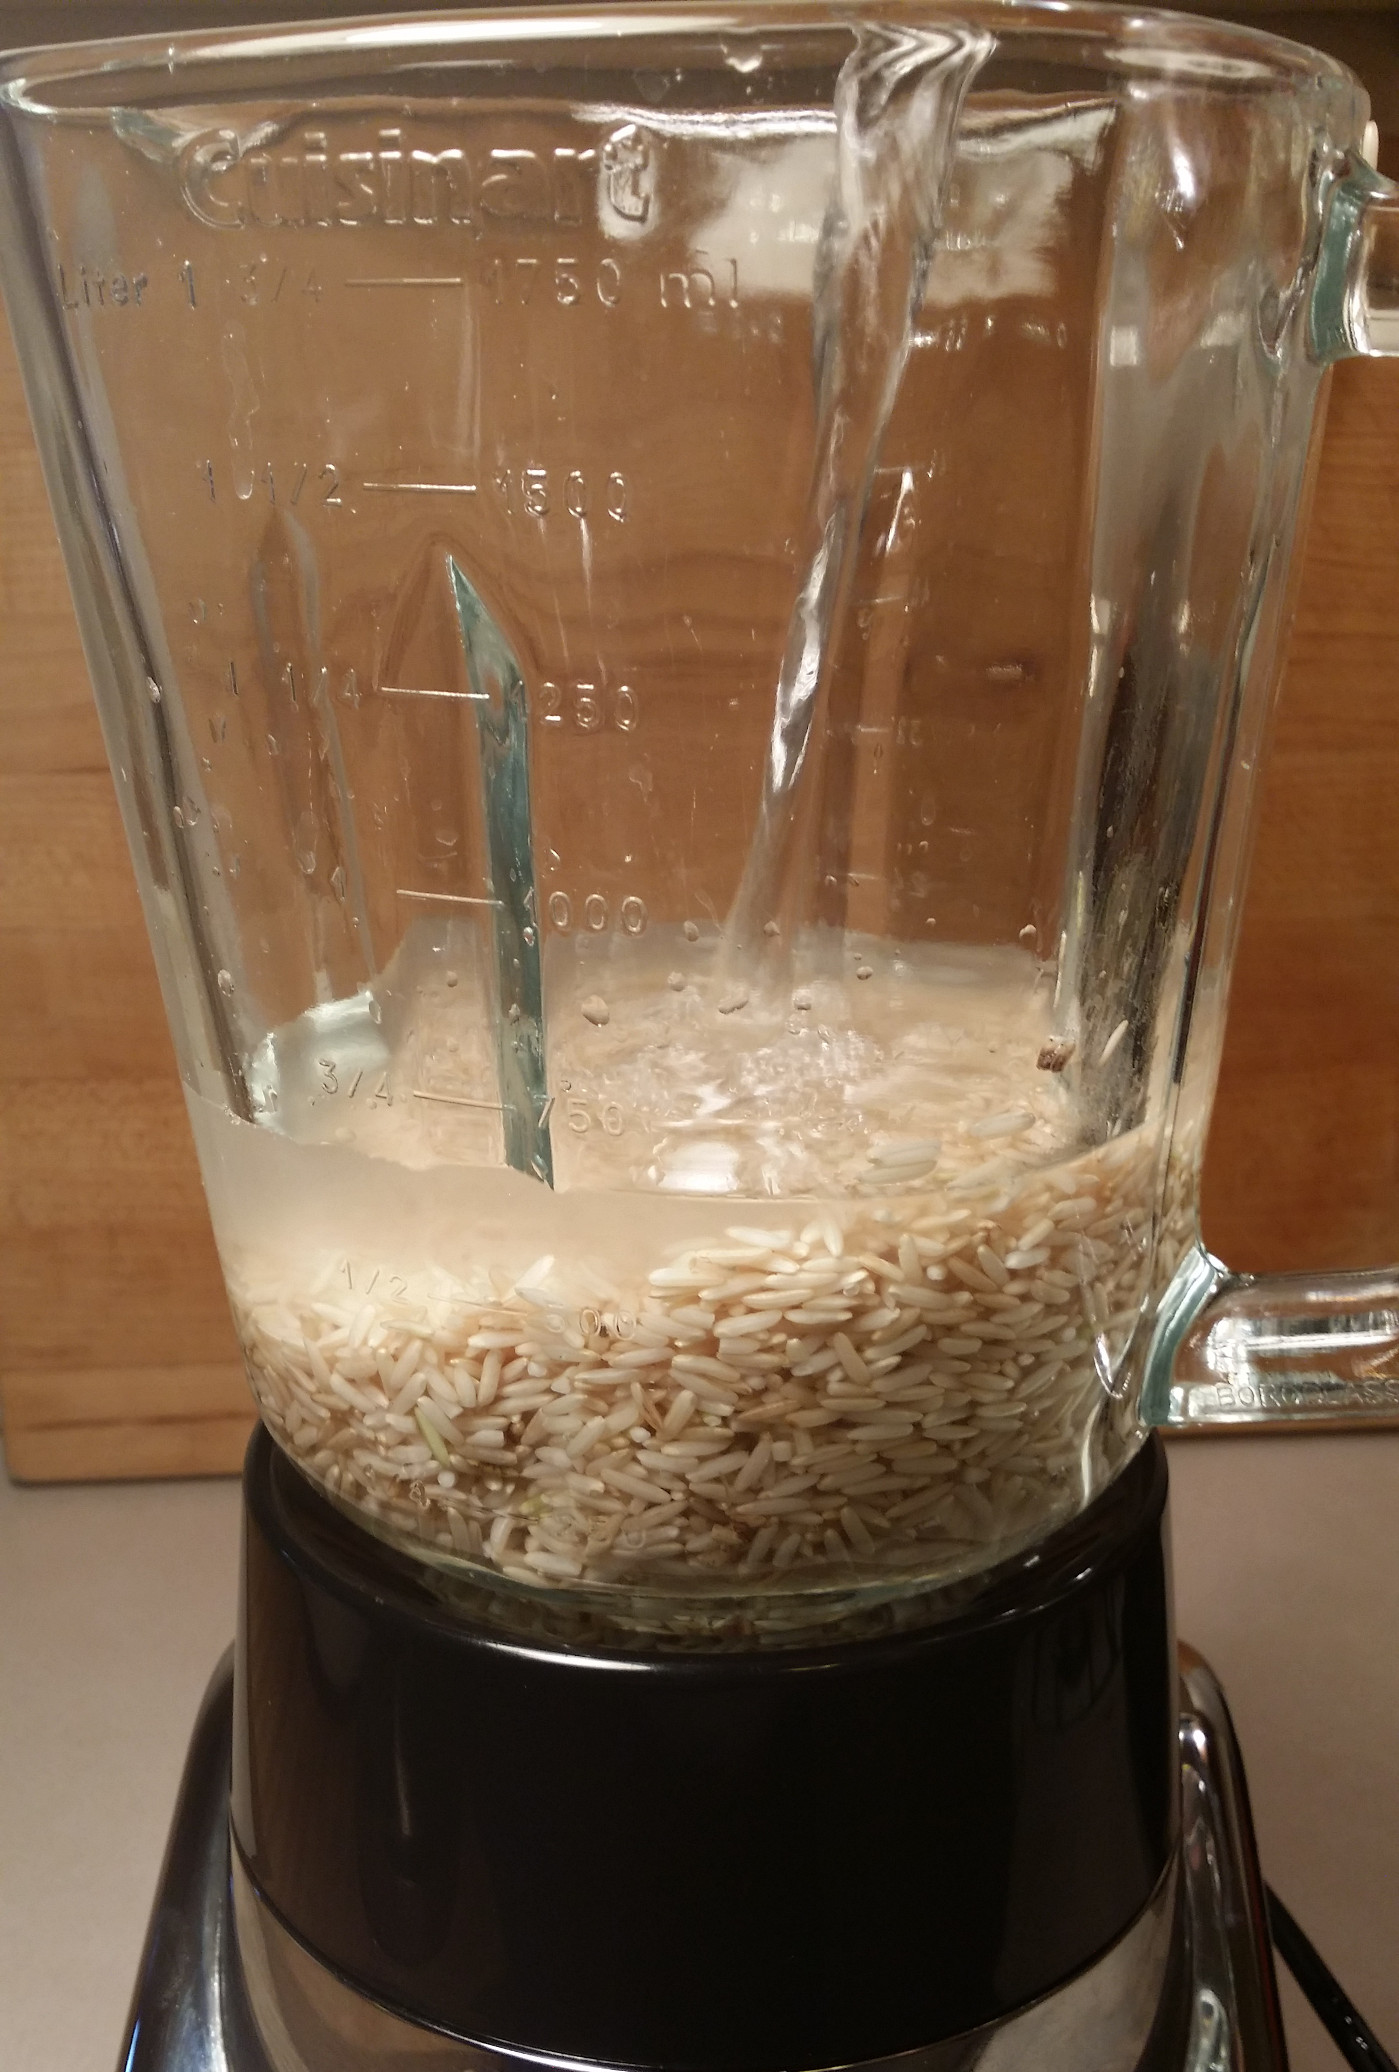 After The Rice Has Soaked, Drain But Do Not Rinse It Place Rice In A  Blender Along With The 4 Cups Of Water If You Want To Add Sweetener,